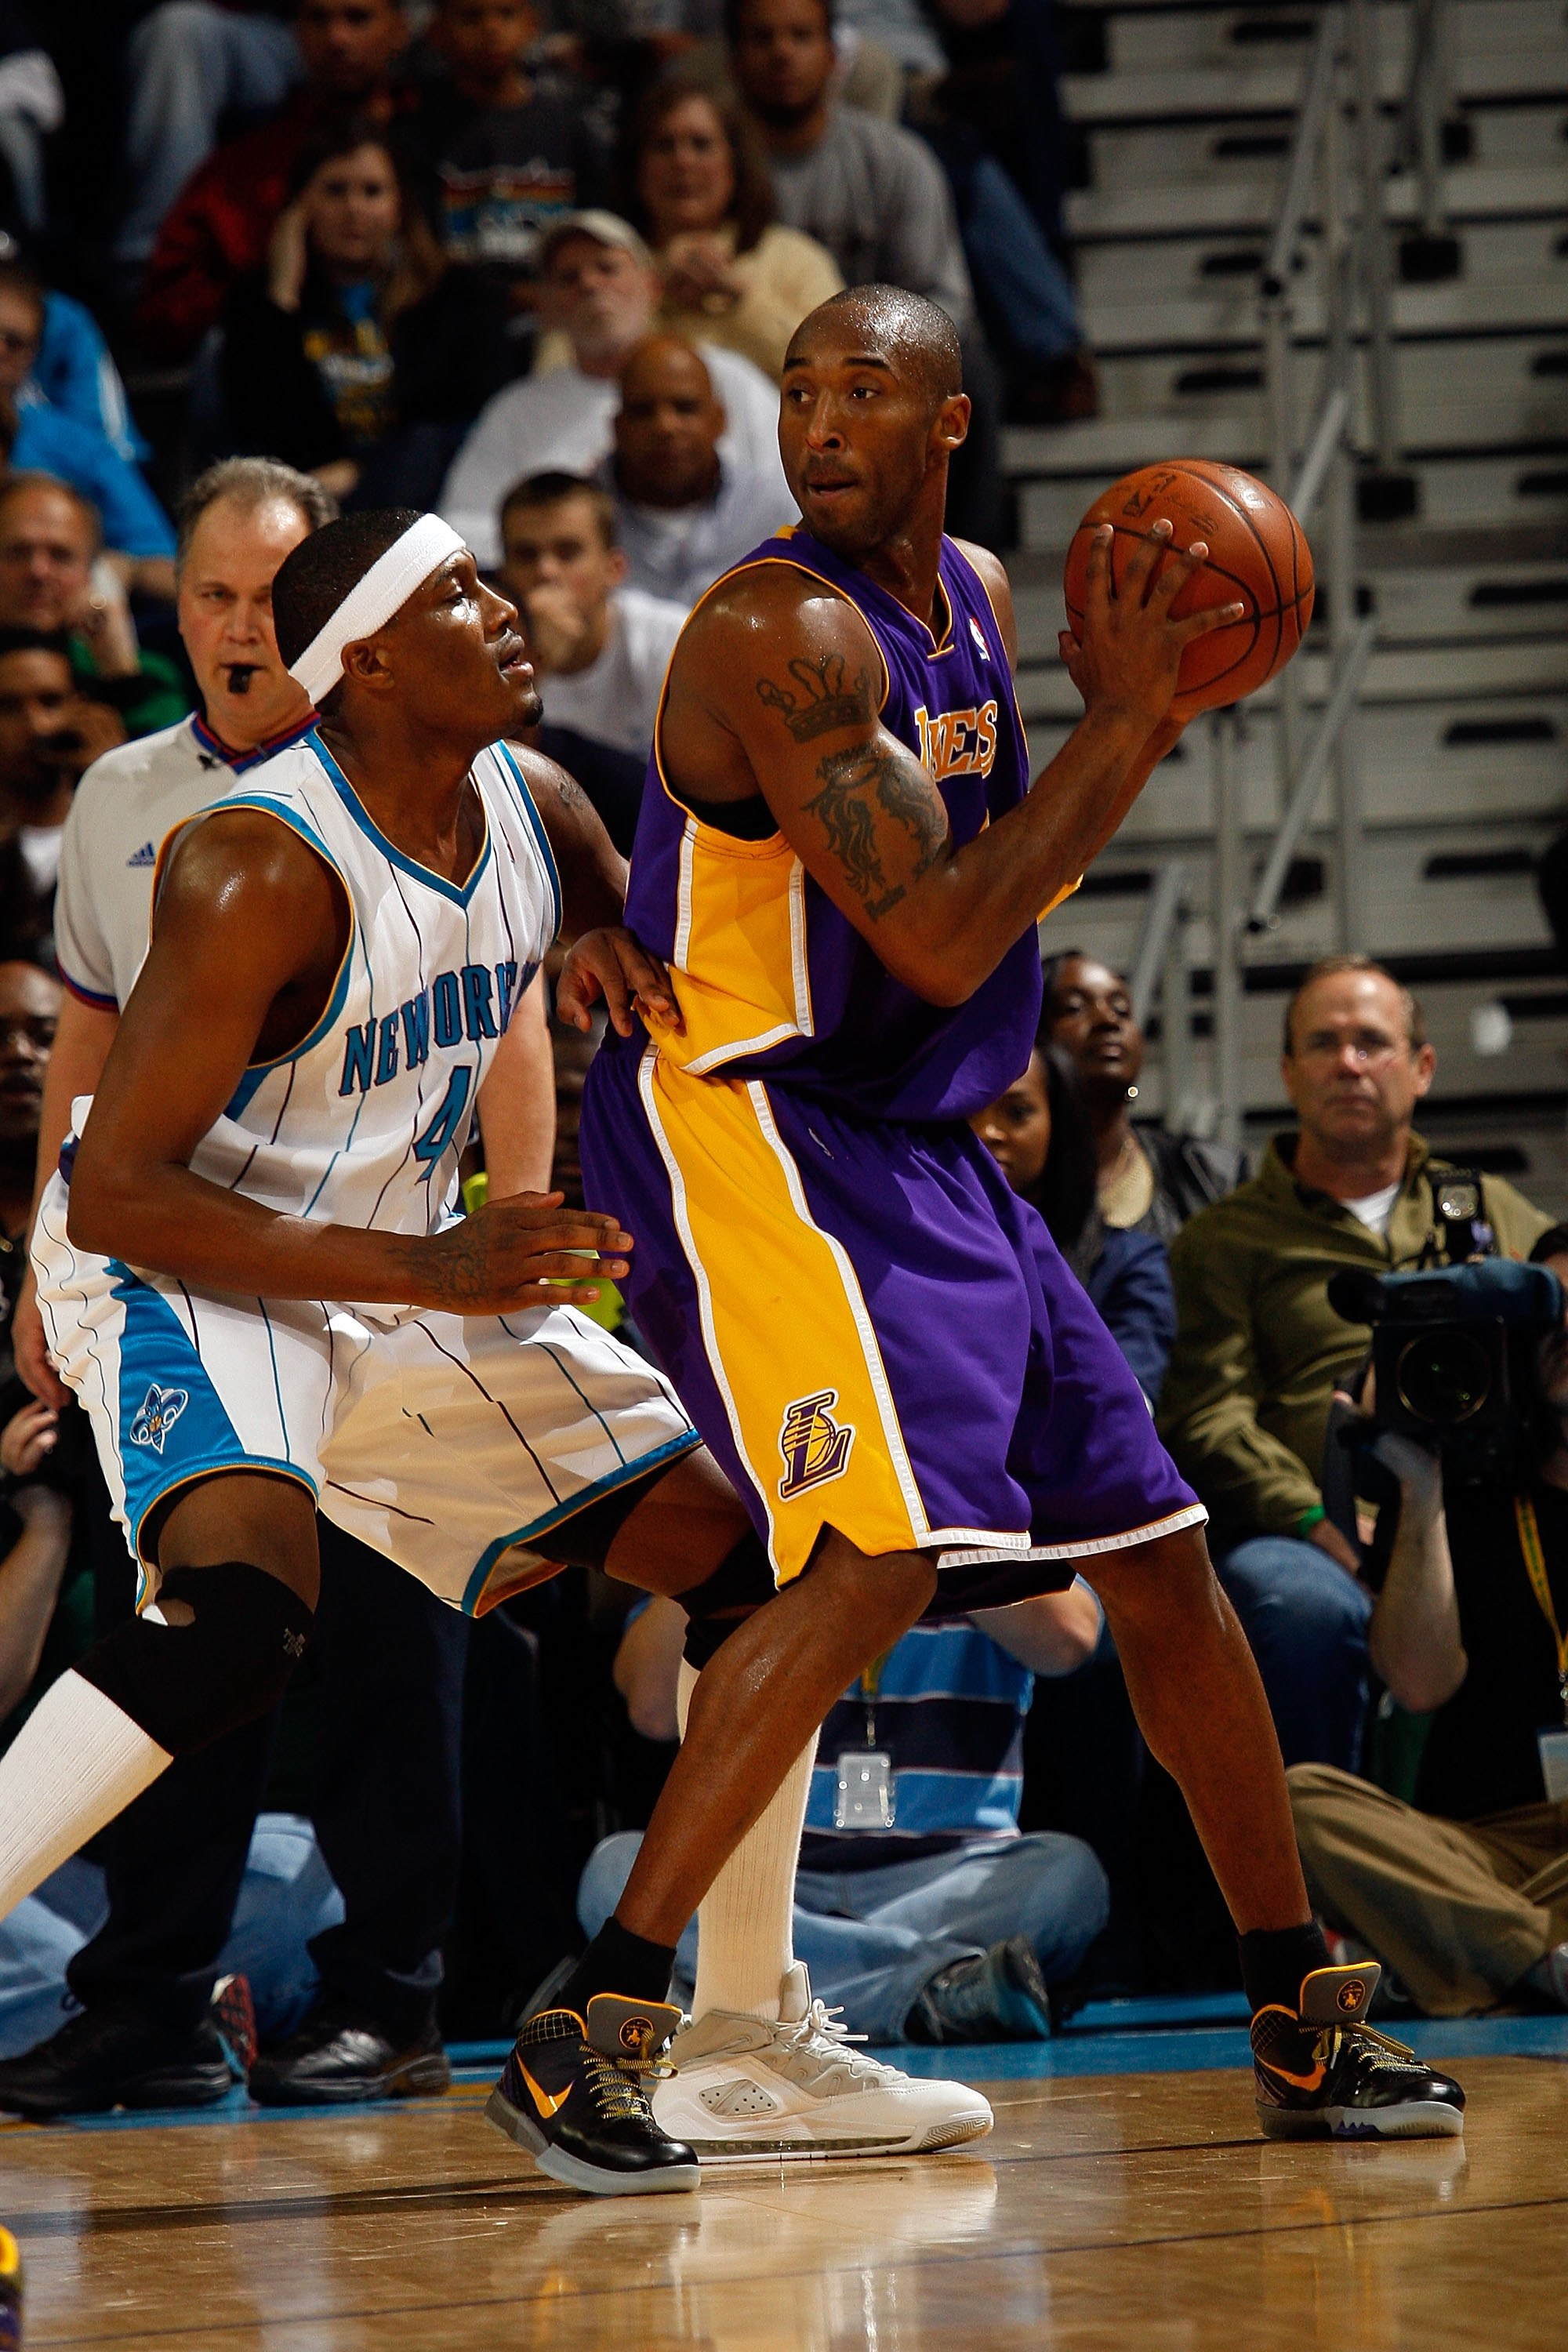 NEW ORLEANS - DECEMBER 23:  Kobe Bryant #24 of the Los Angeles Lakers drives against James Posey #41 of the New Orleans Hornets on December 23, 2008 at the New Orleans Arena in New Orleans, Louisiana.  NOTE TO USER: User expressly acknowledges and agrees